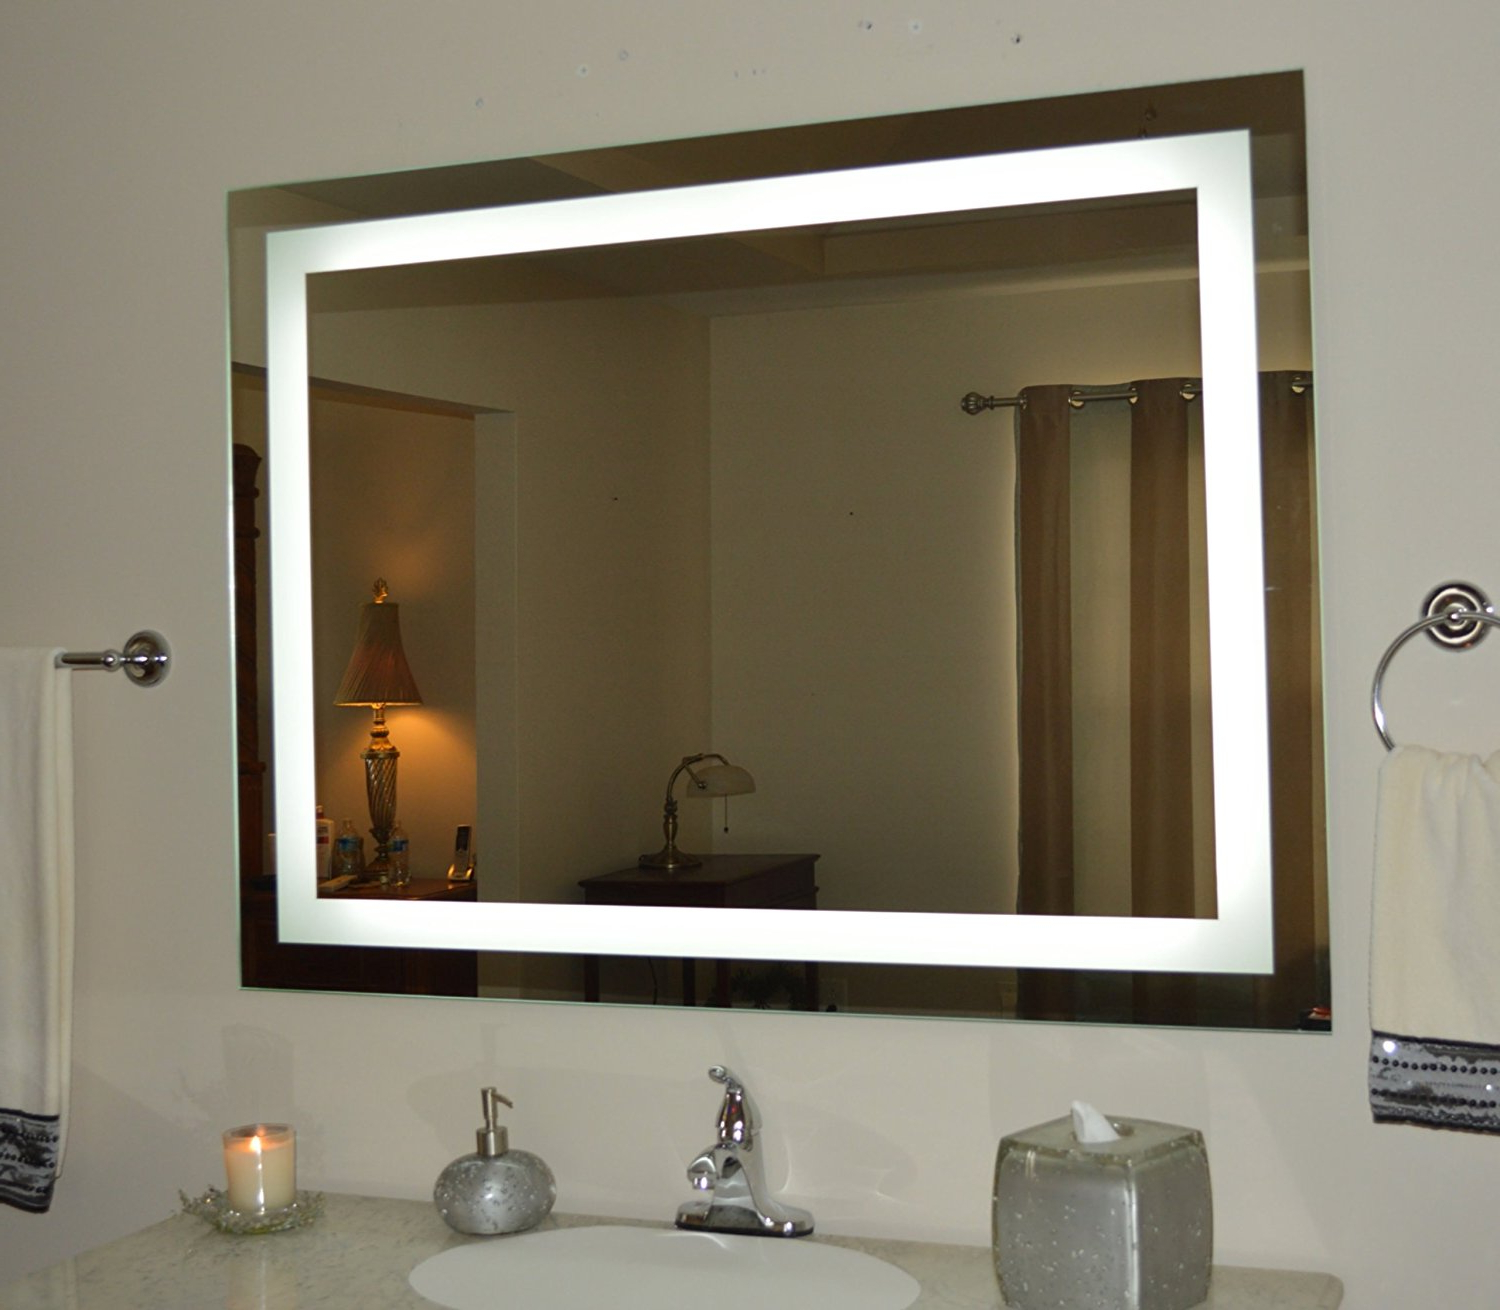 Lighted Vanity Mirror Wall — Awesome House Lighting : Perfect Within Favorite Lighted Vanity Wall Mirrors (View 5 of 20)